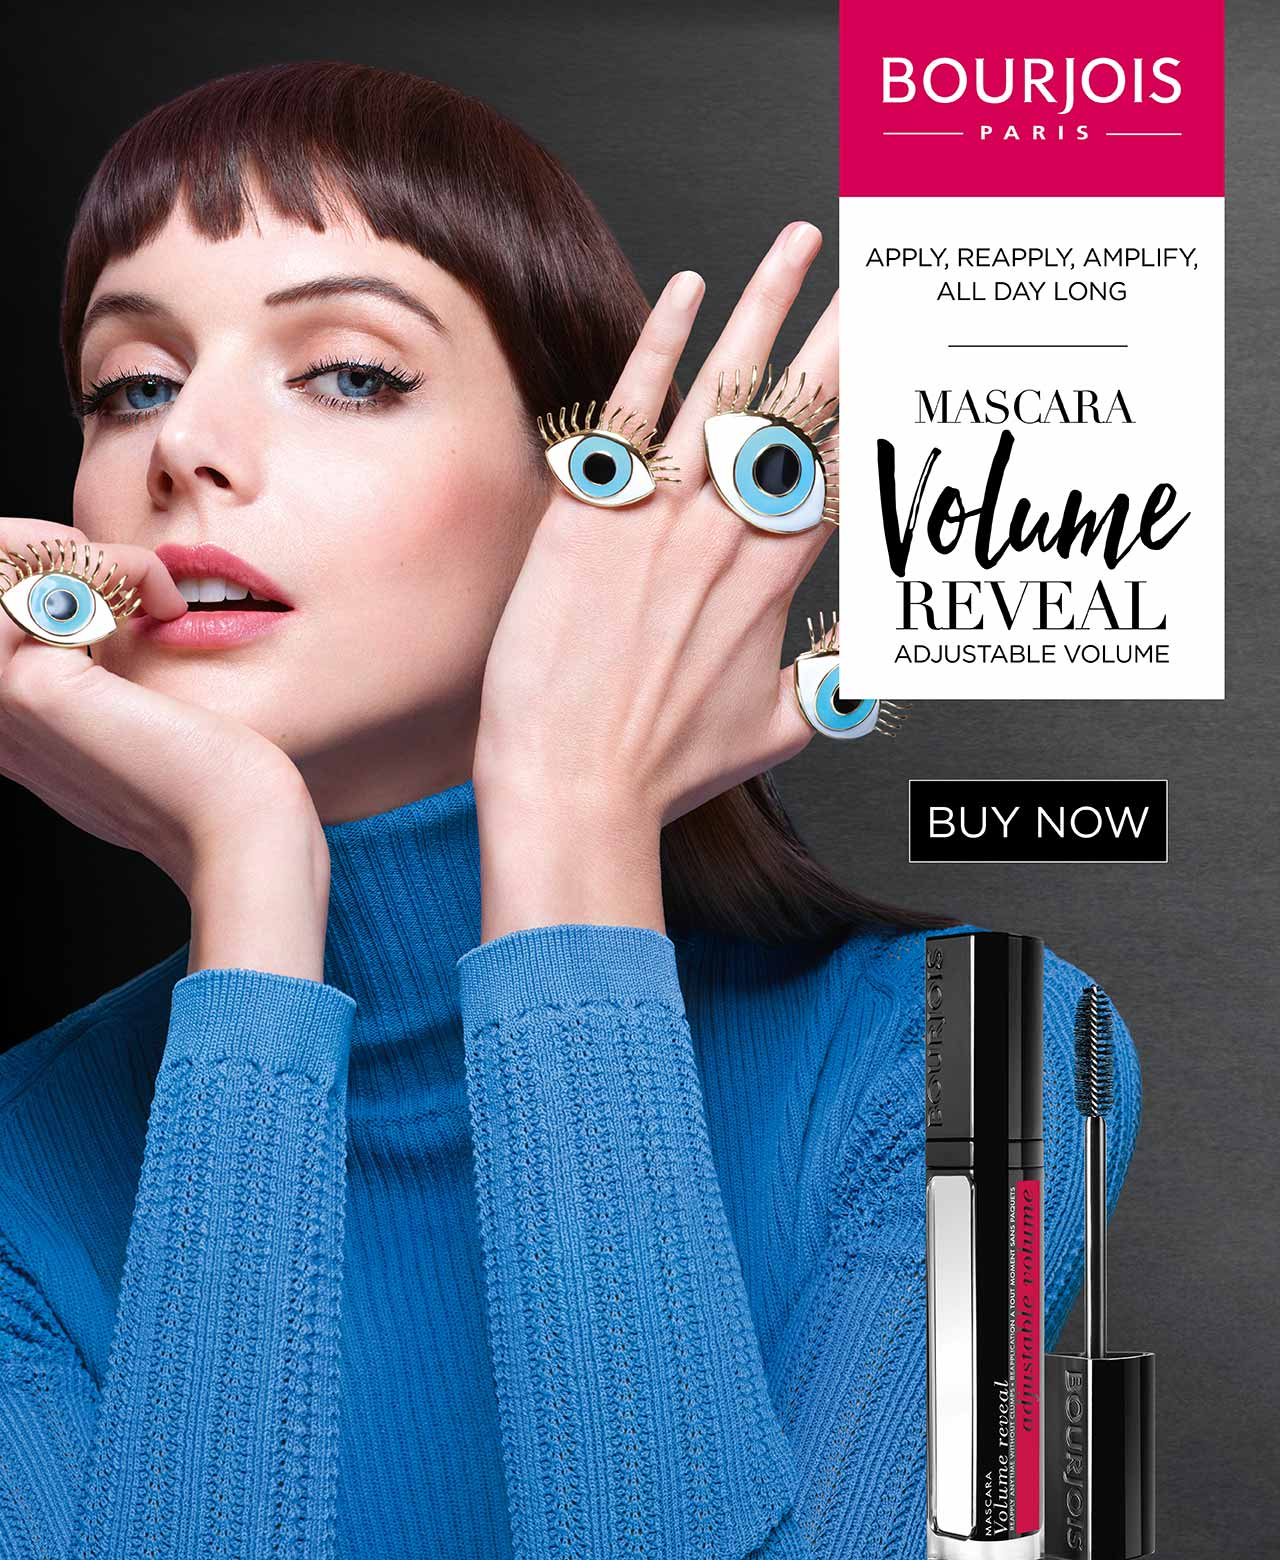 Bourjois Mascara Volume Reveal Adjustable Volume.